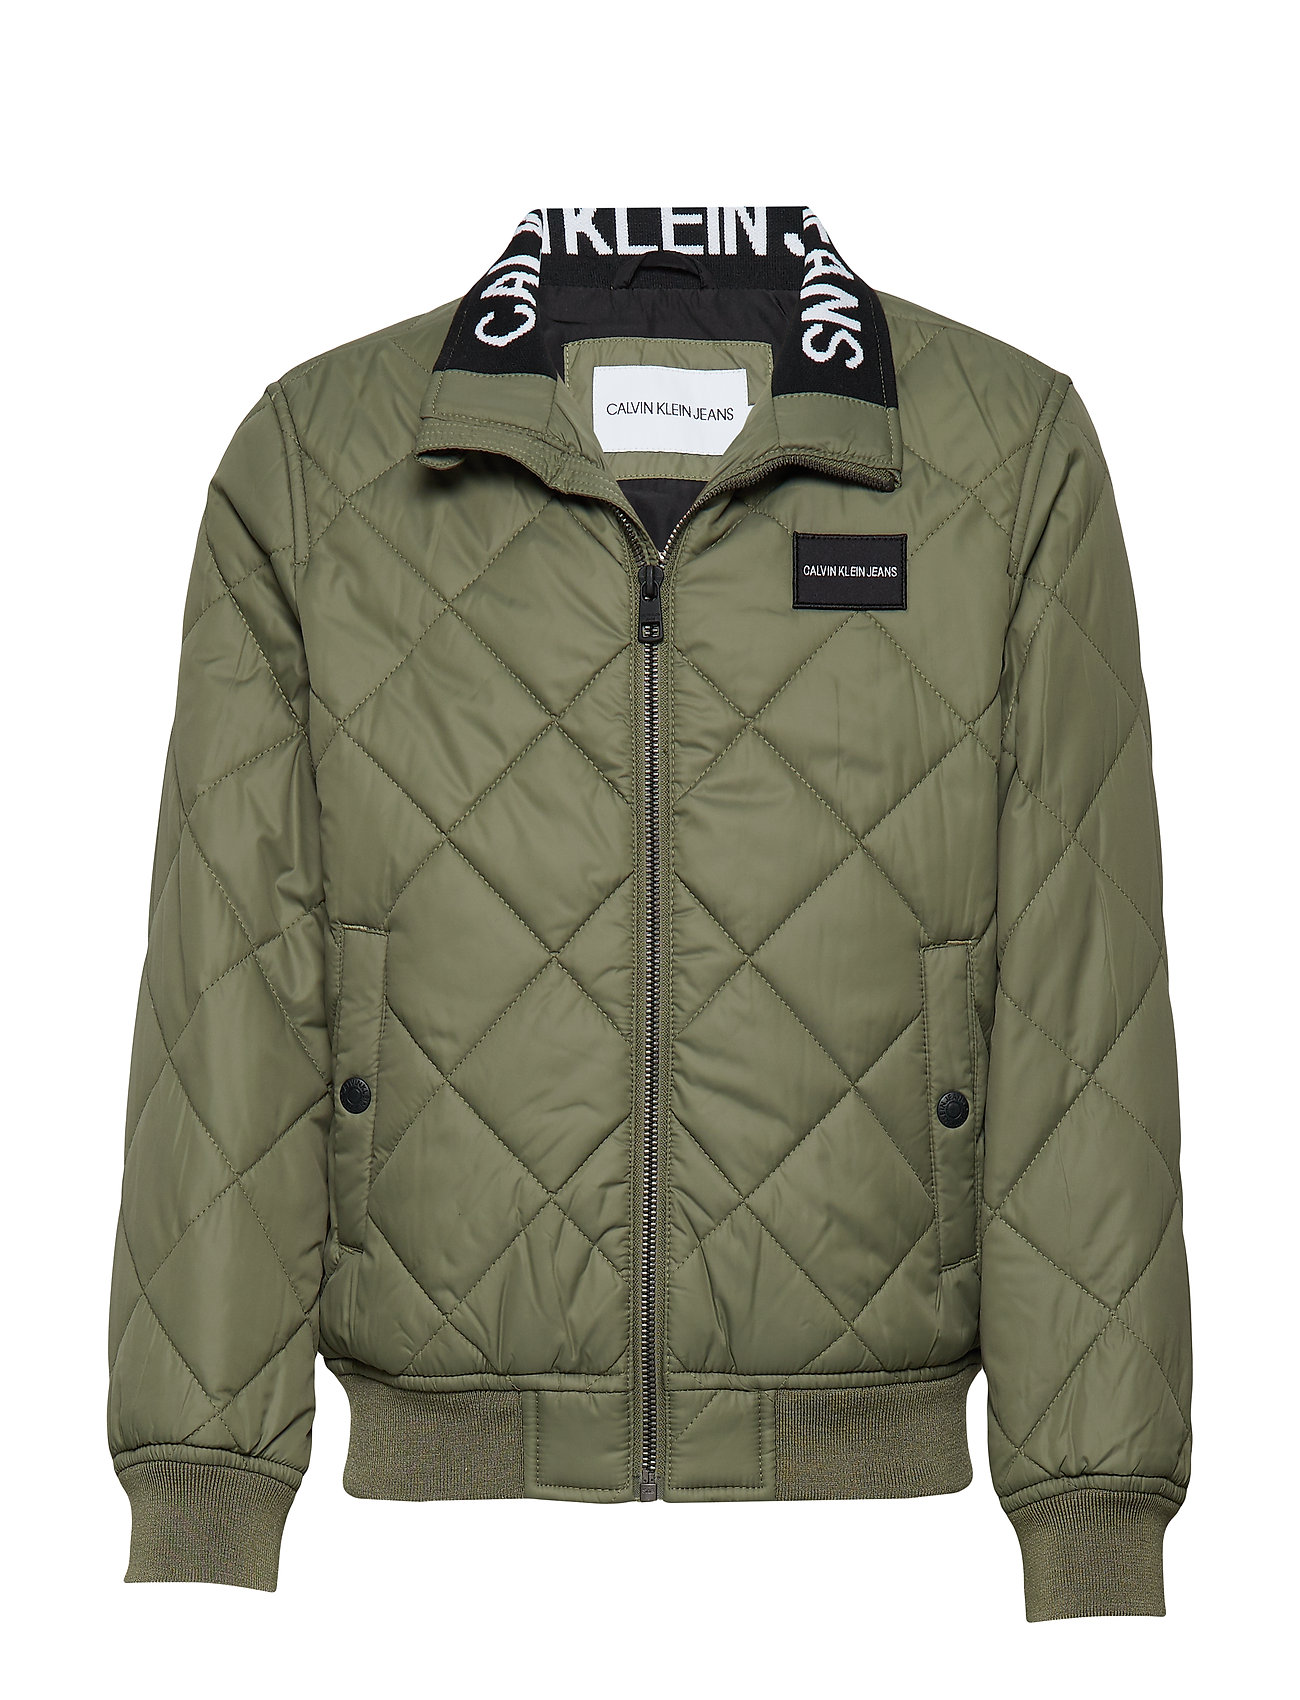 Calvin Klein RECYCLED QUILTED PAD - DUSTY OLIVE